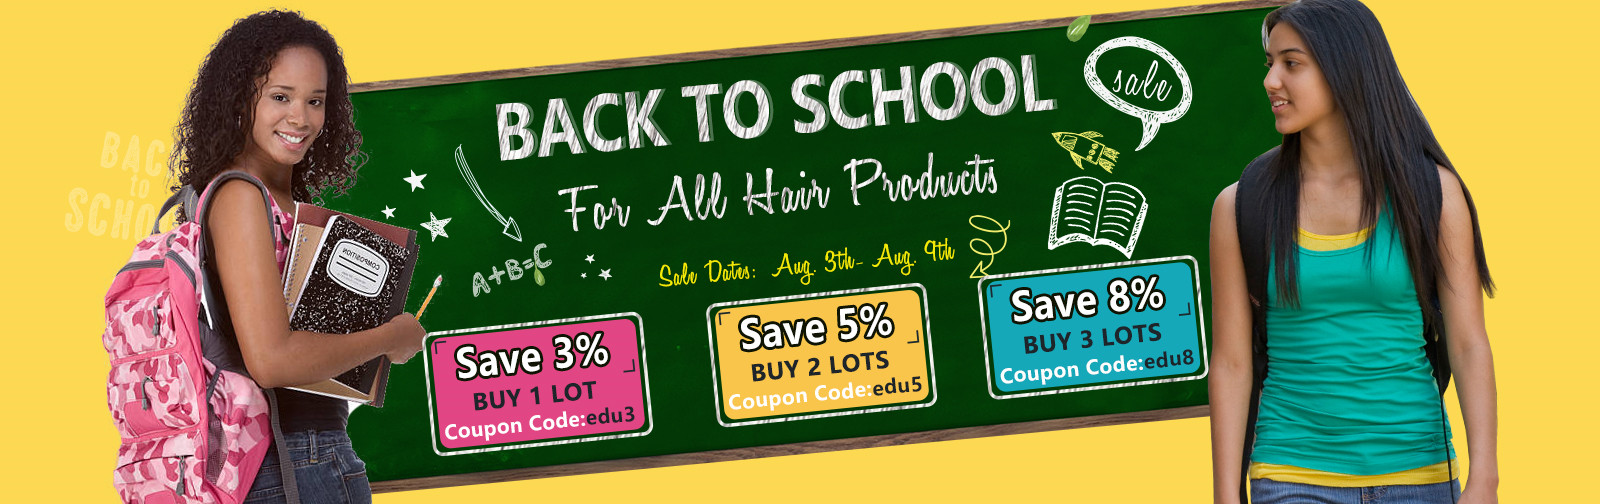 back t to school promotion